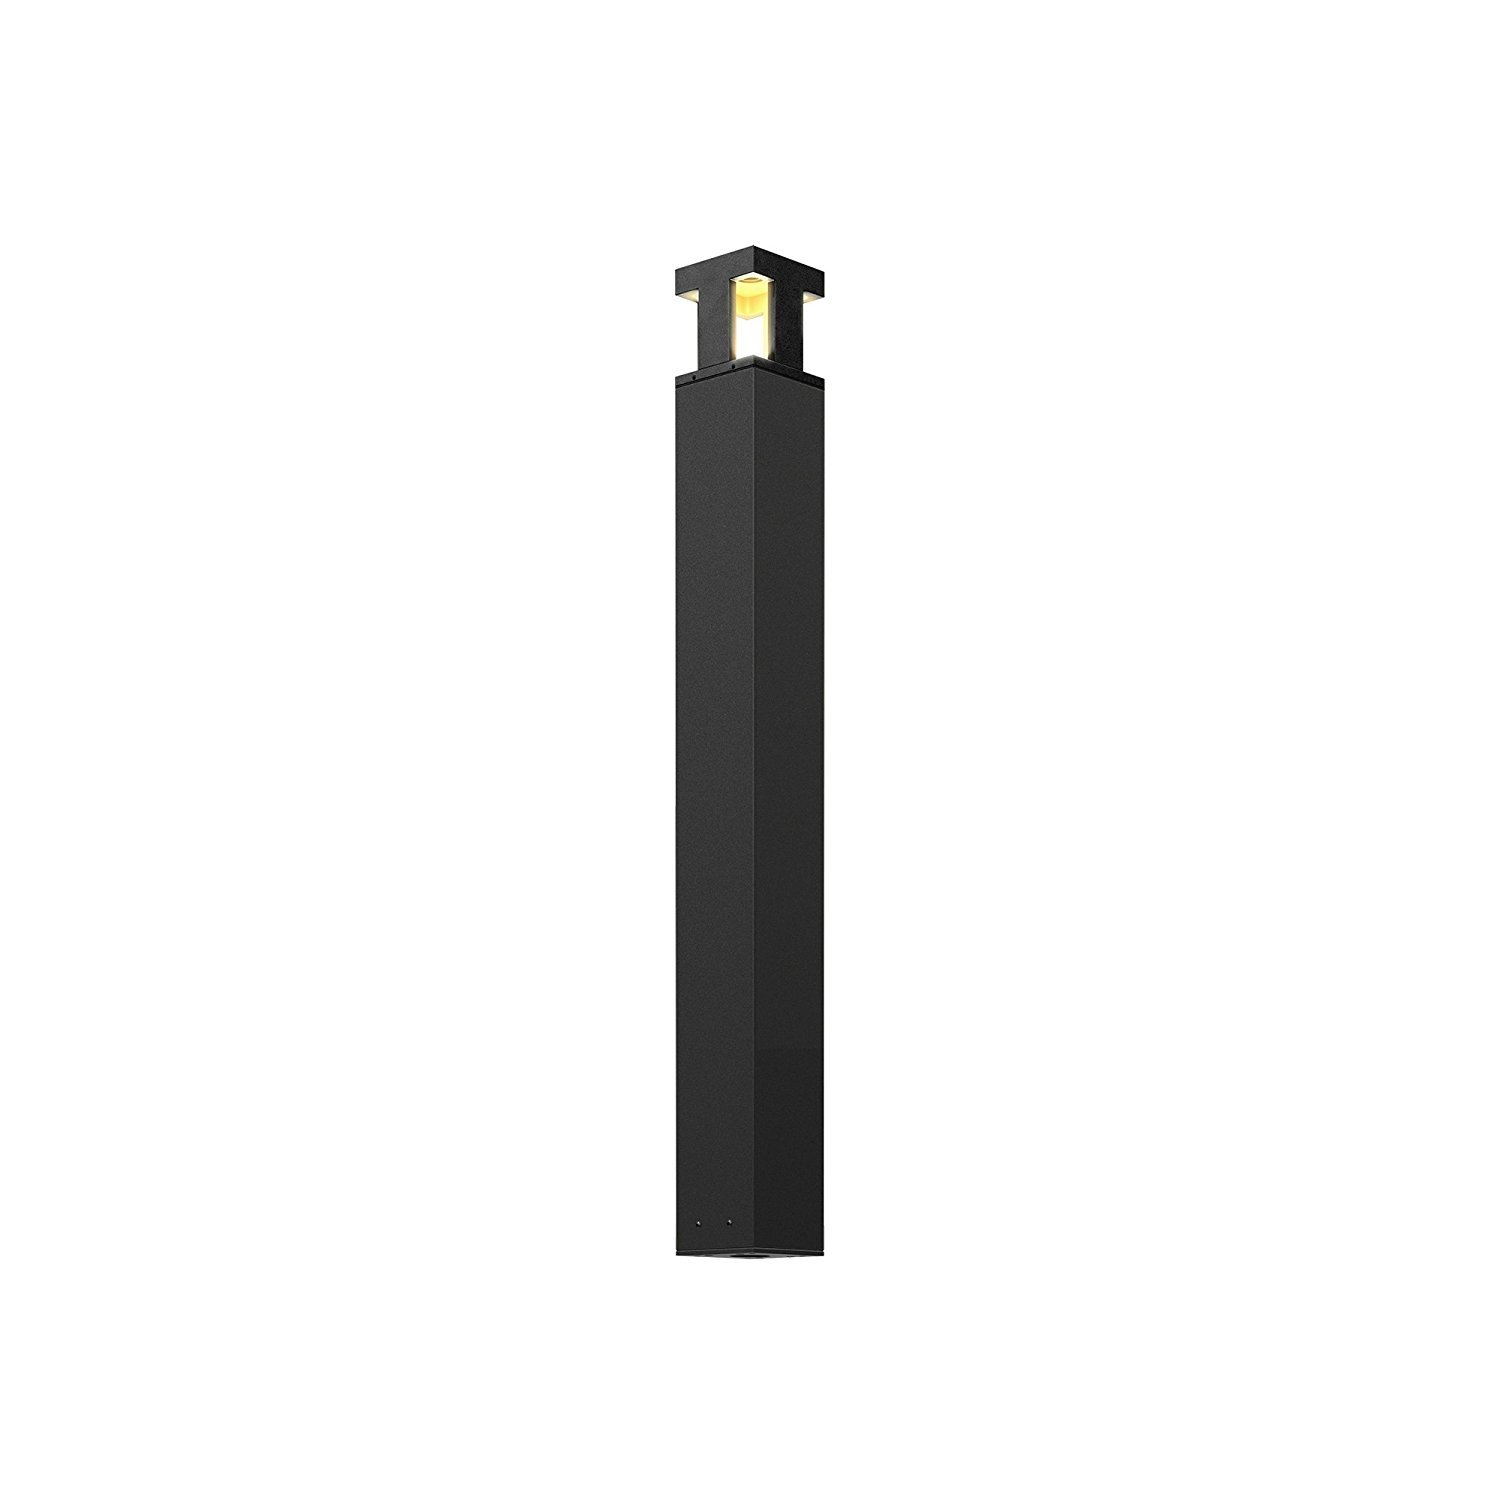 DALS LED Bollard, 7W, 3000k, 700 Lumens - BK by AR Lighting